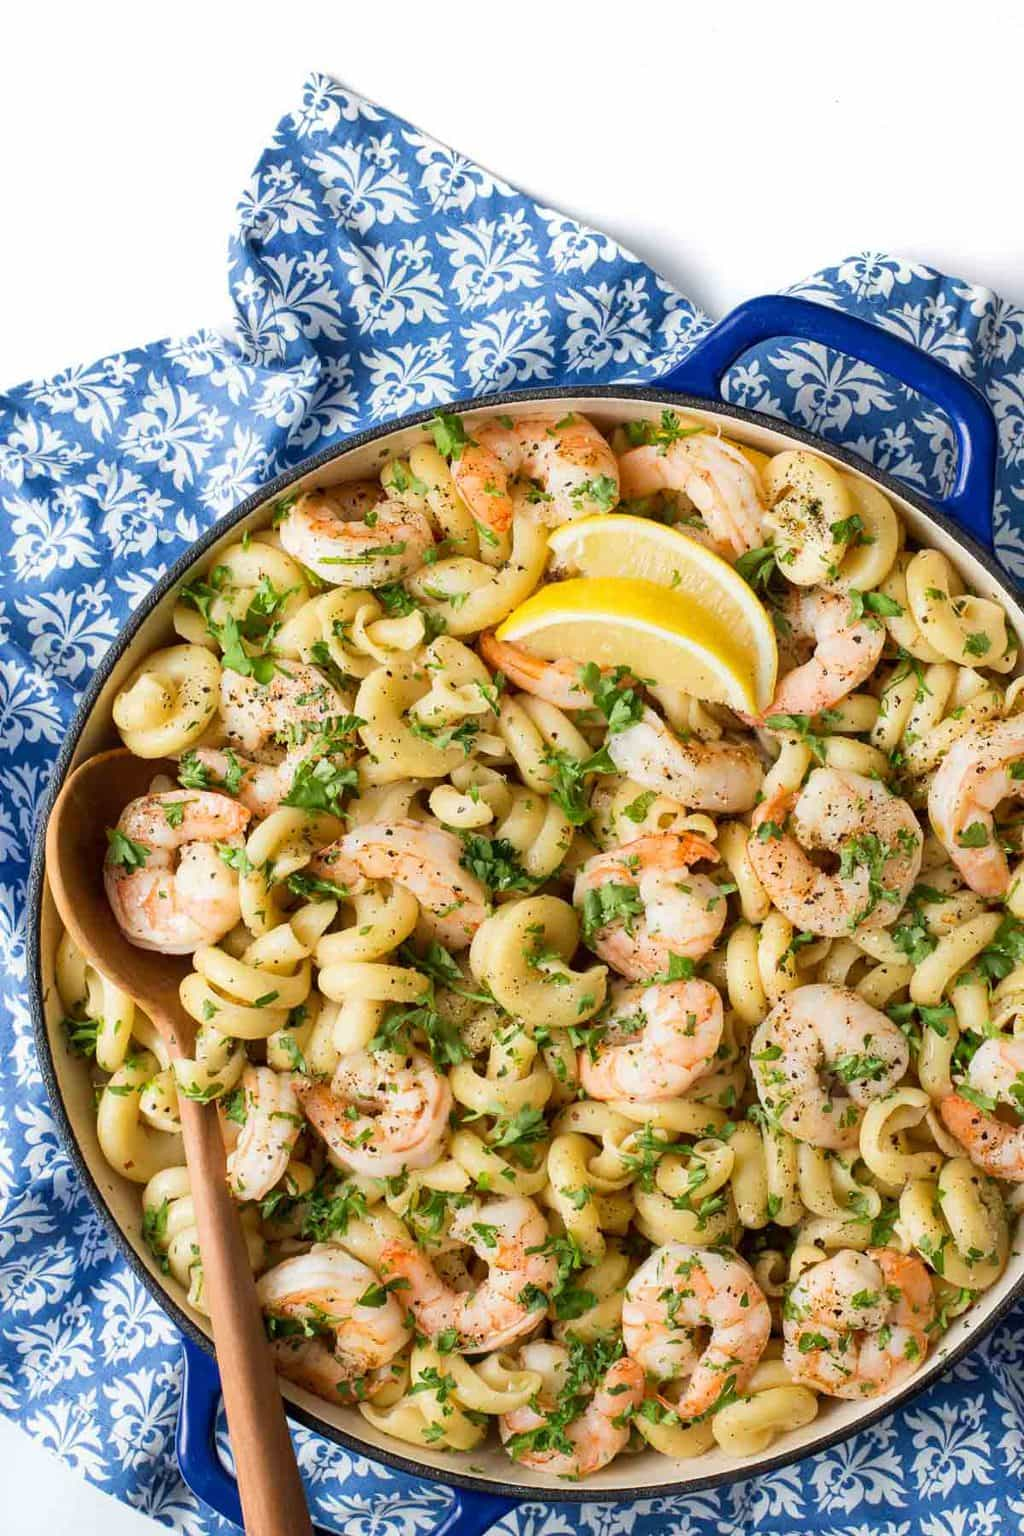 Overhead photo of a blue skillet filled with Skillet Pasta Shrimp Scampi on a blue and white patterned napkin.